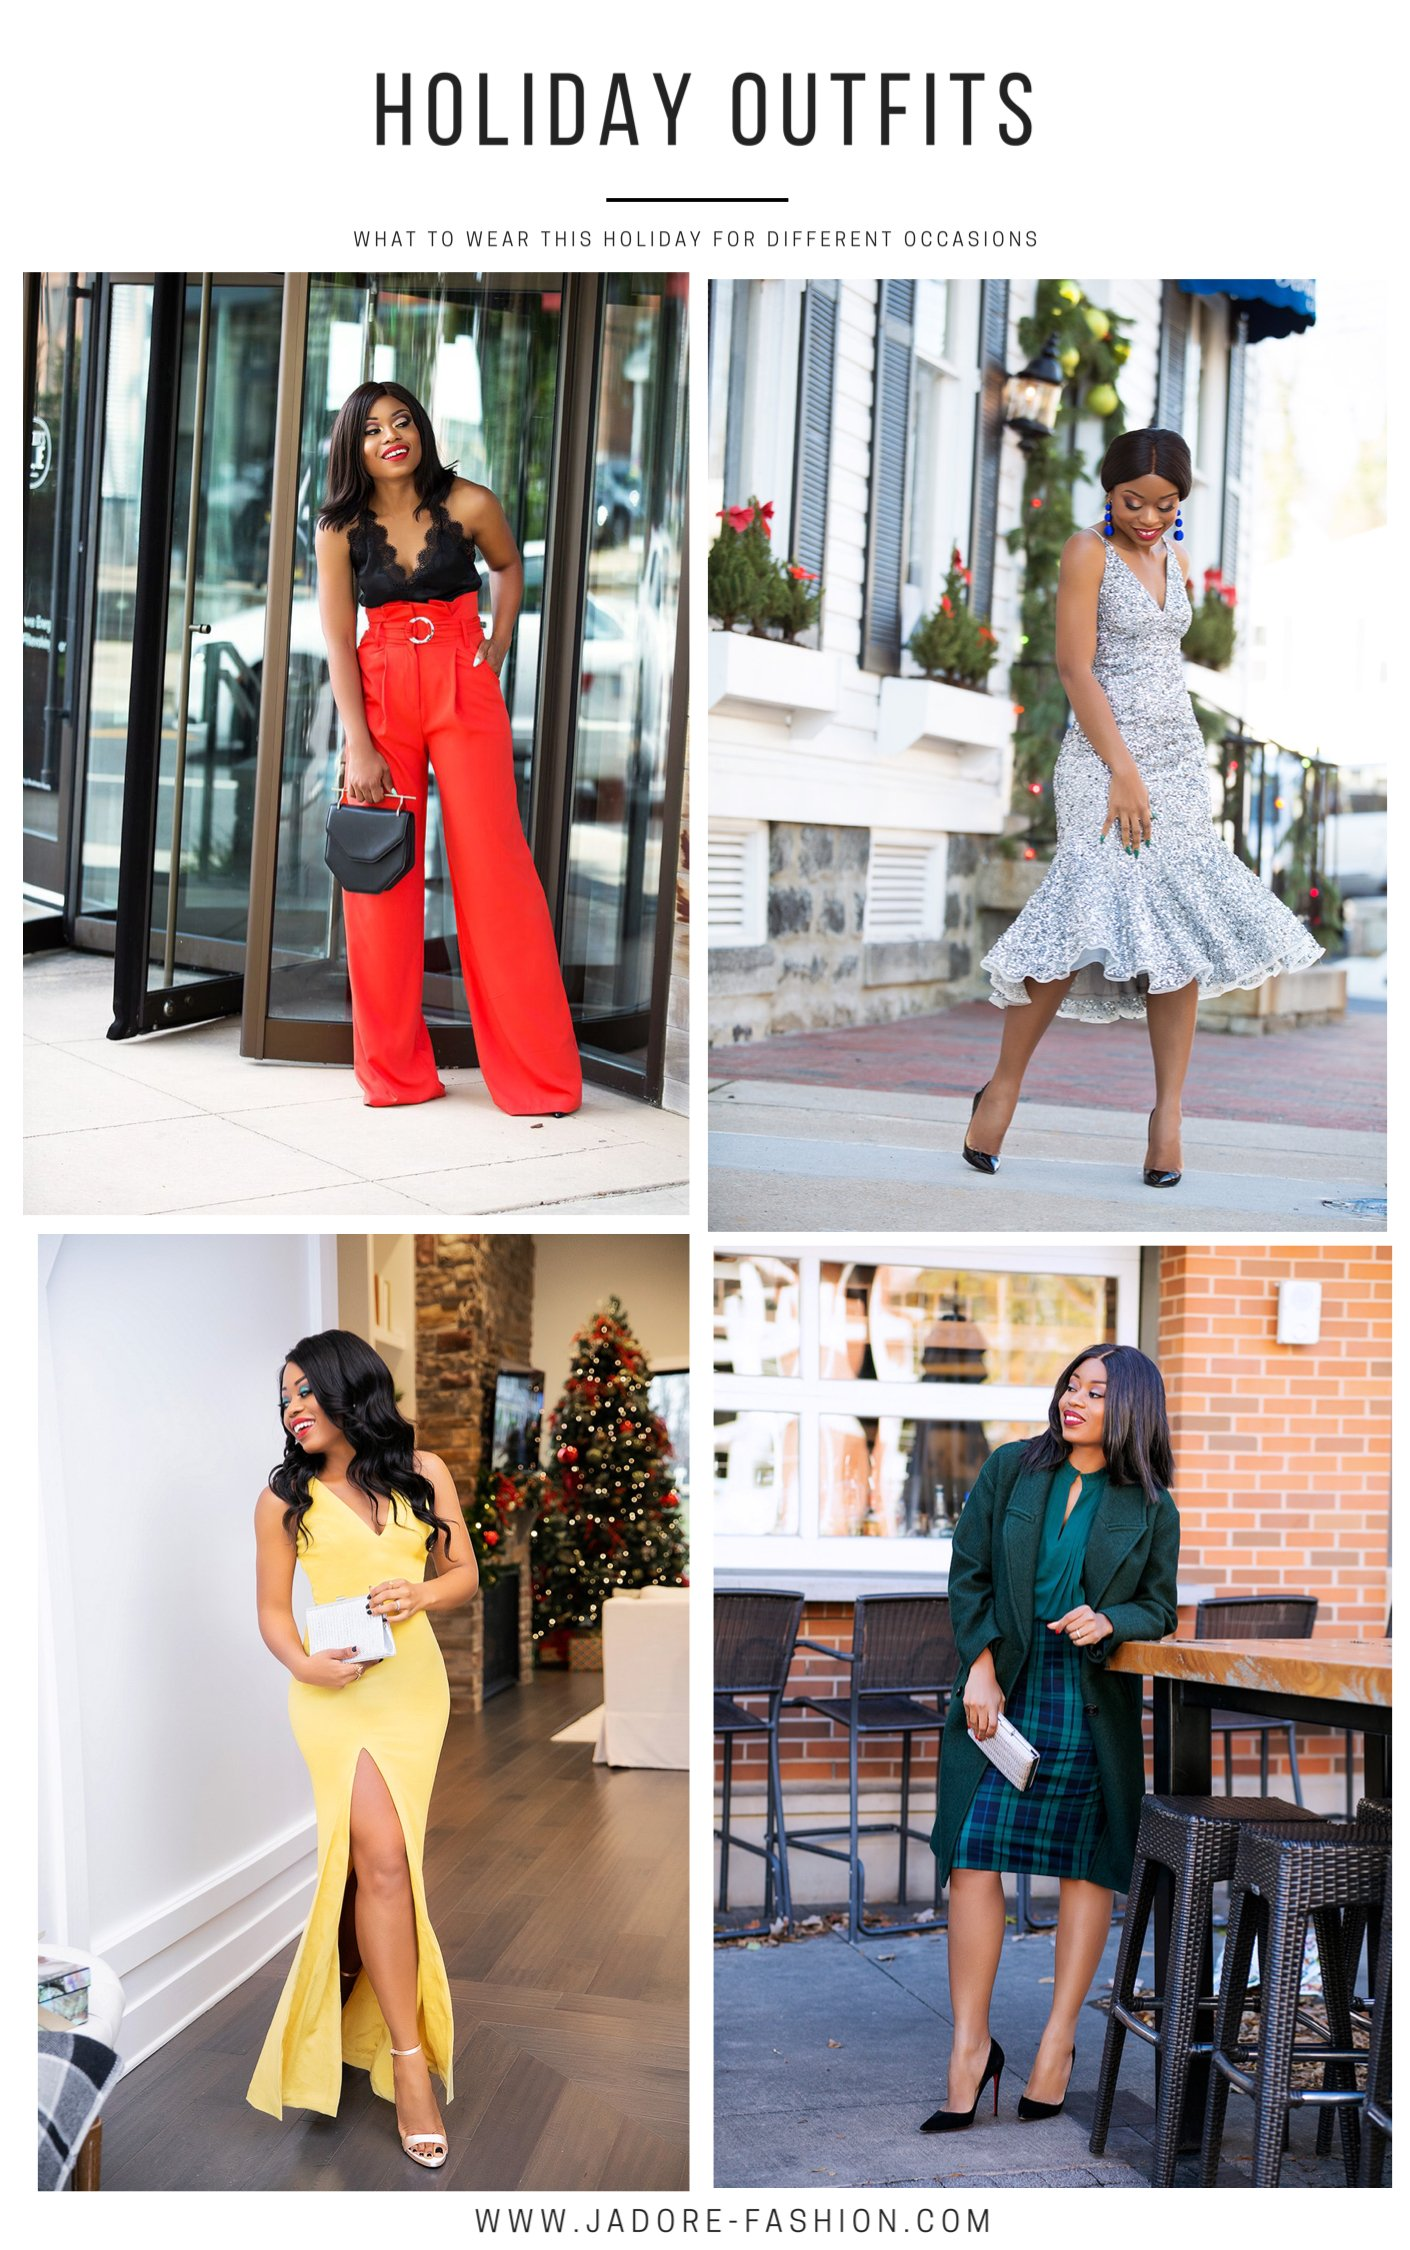 Stella Adewunmi shares different holiday outfits ideas